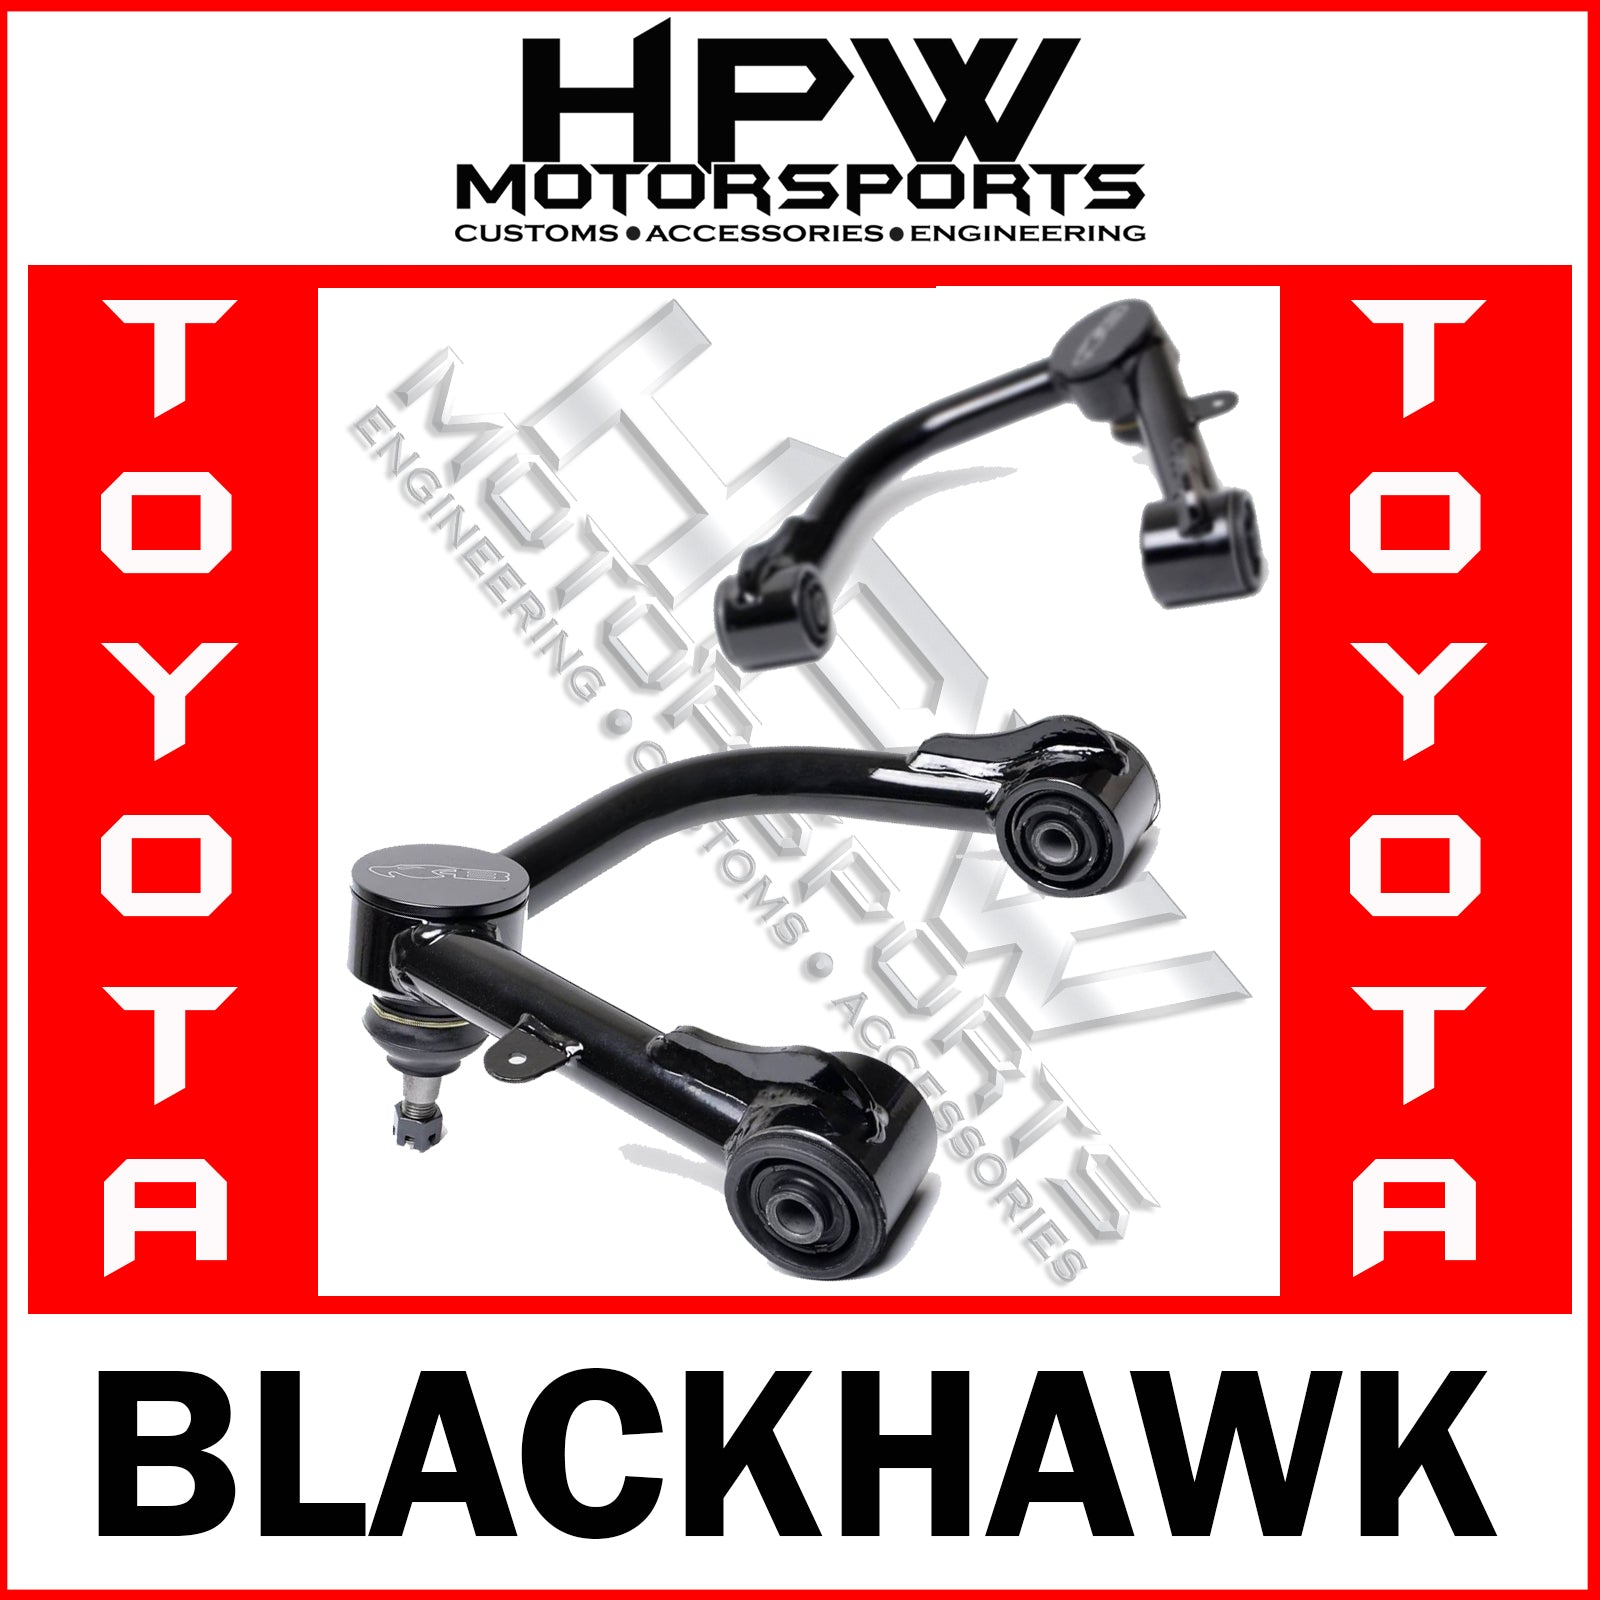 Blackhawk UCAS Upper control arms - FJ Cruiser 2009 onwards